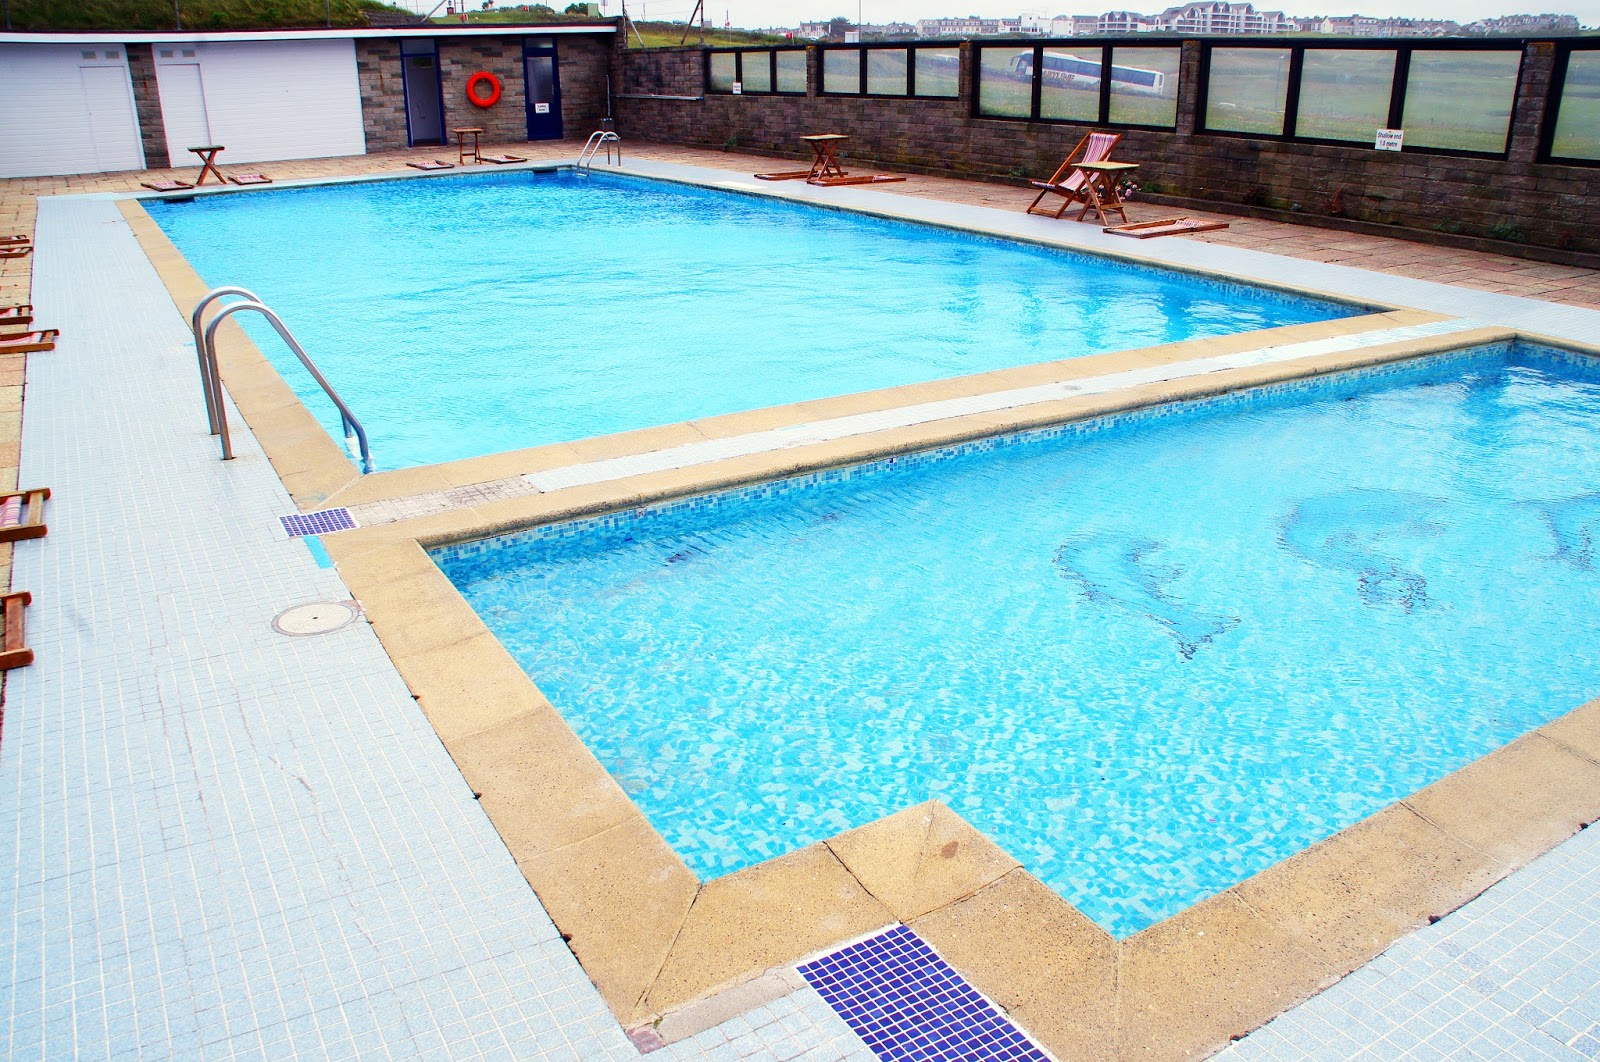 Headland Hotel Newquay Cornwall Pool